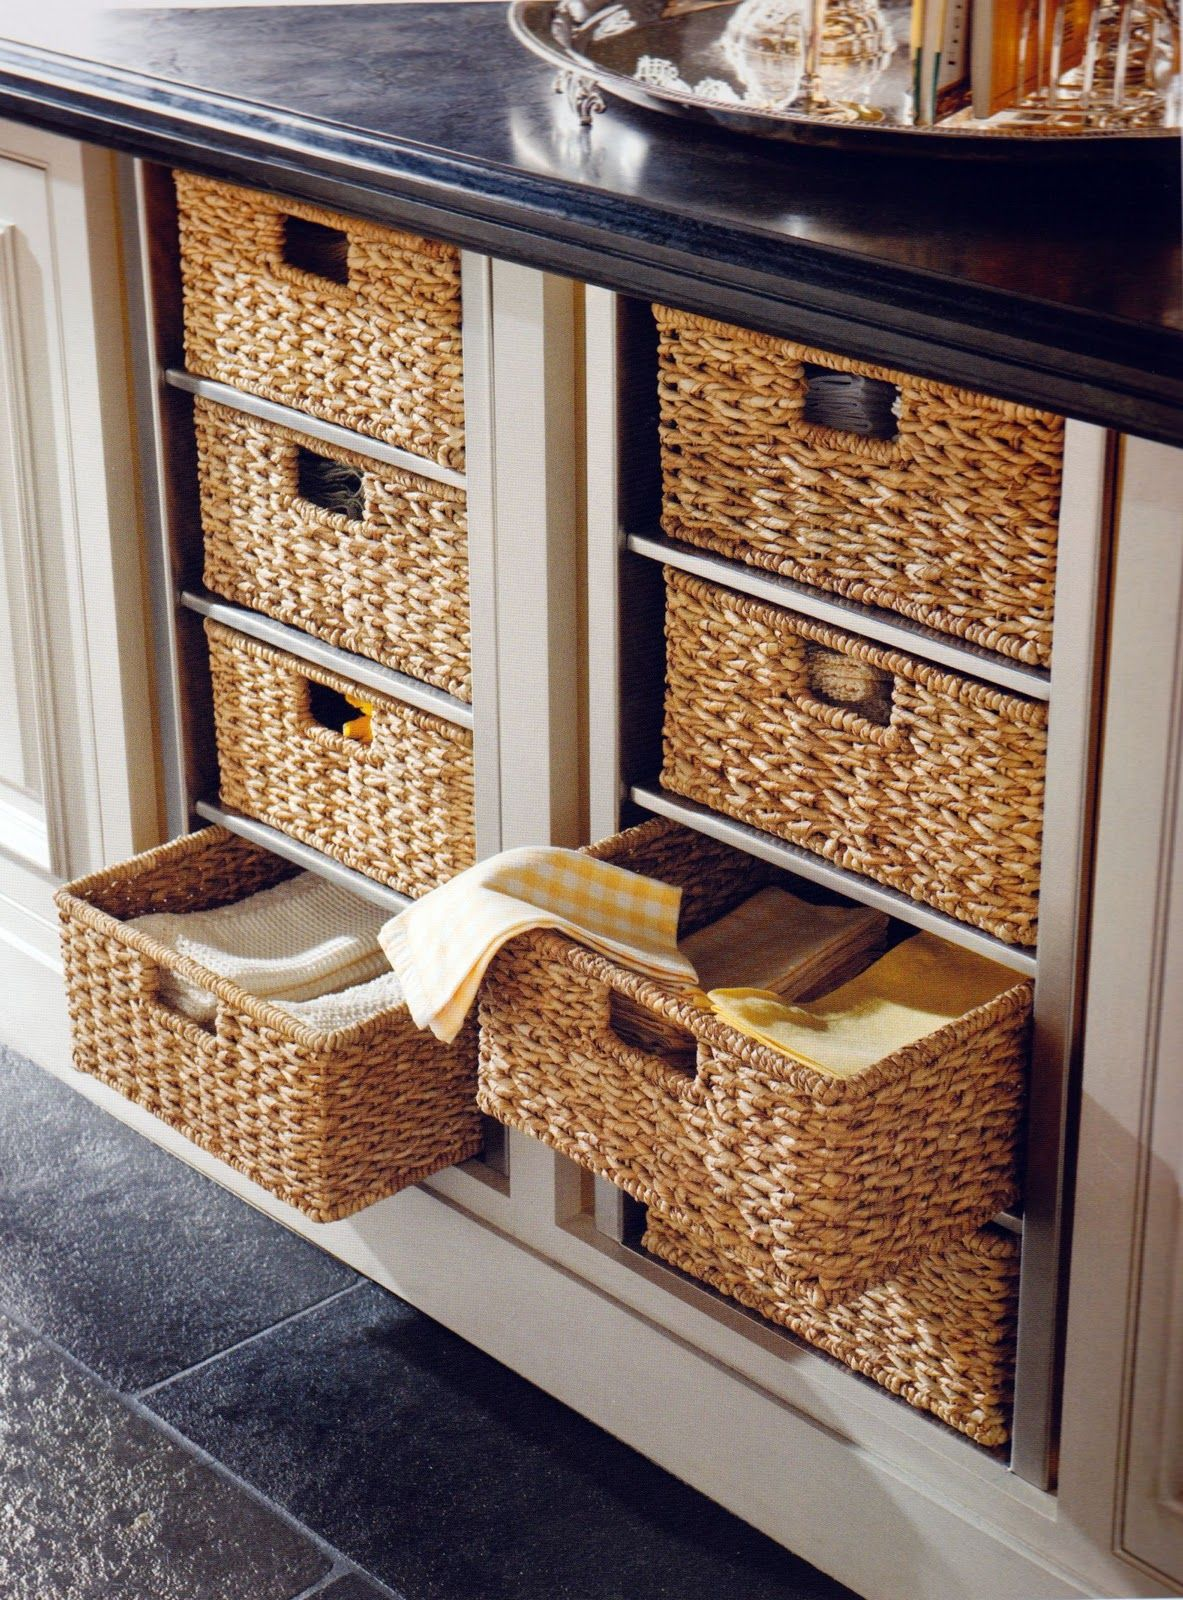 Basket drawers for where the dishwasher used to be.. good idea, Id ...